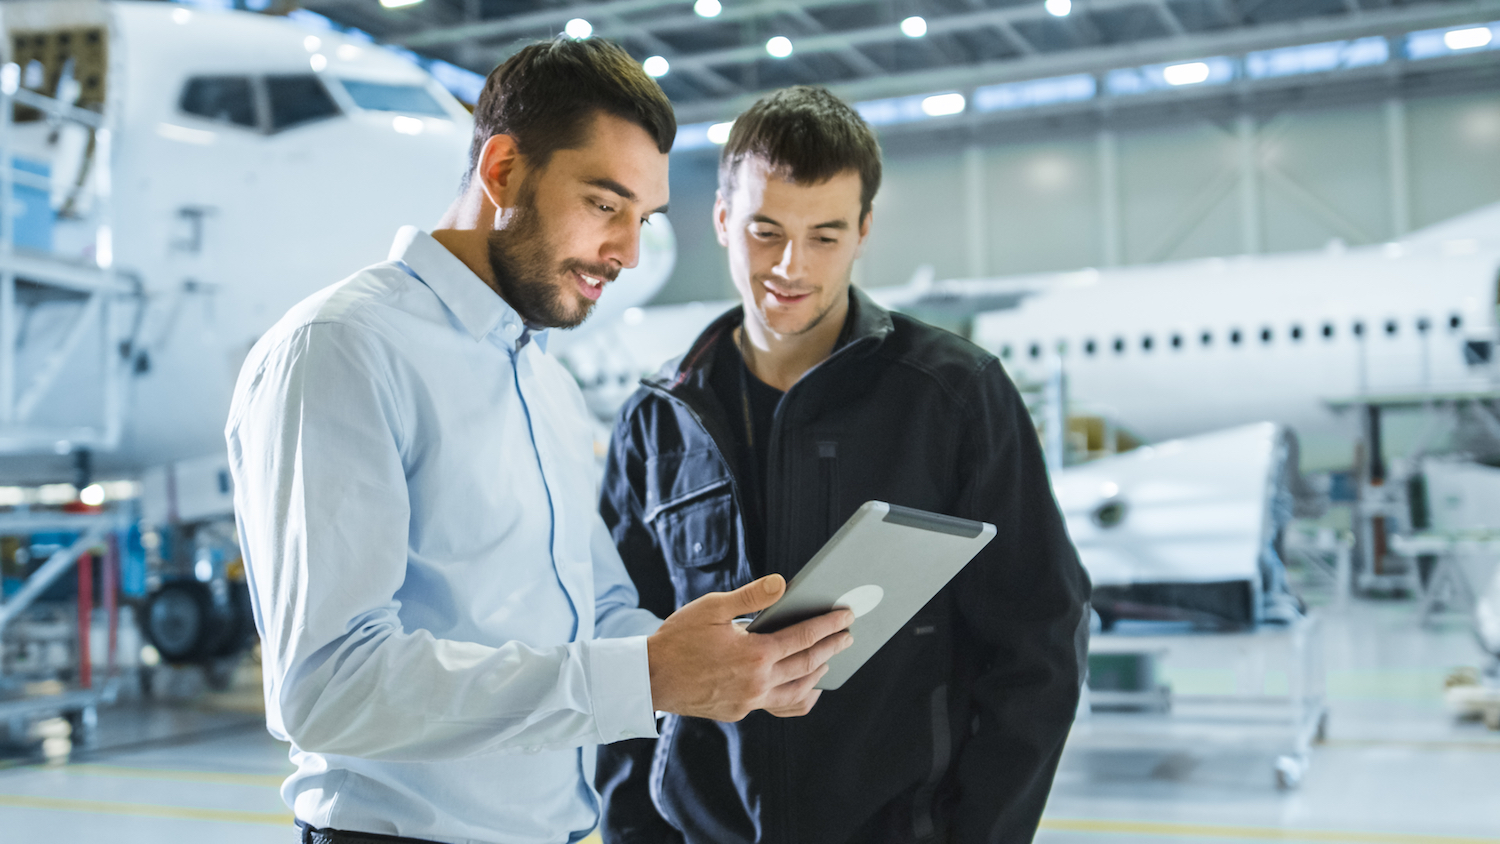 two male technicians on tablet in front of airplane